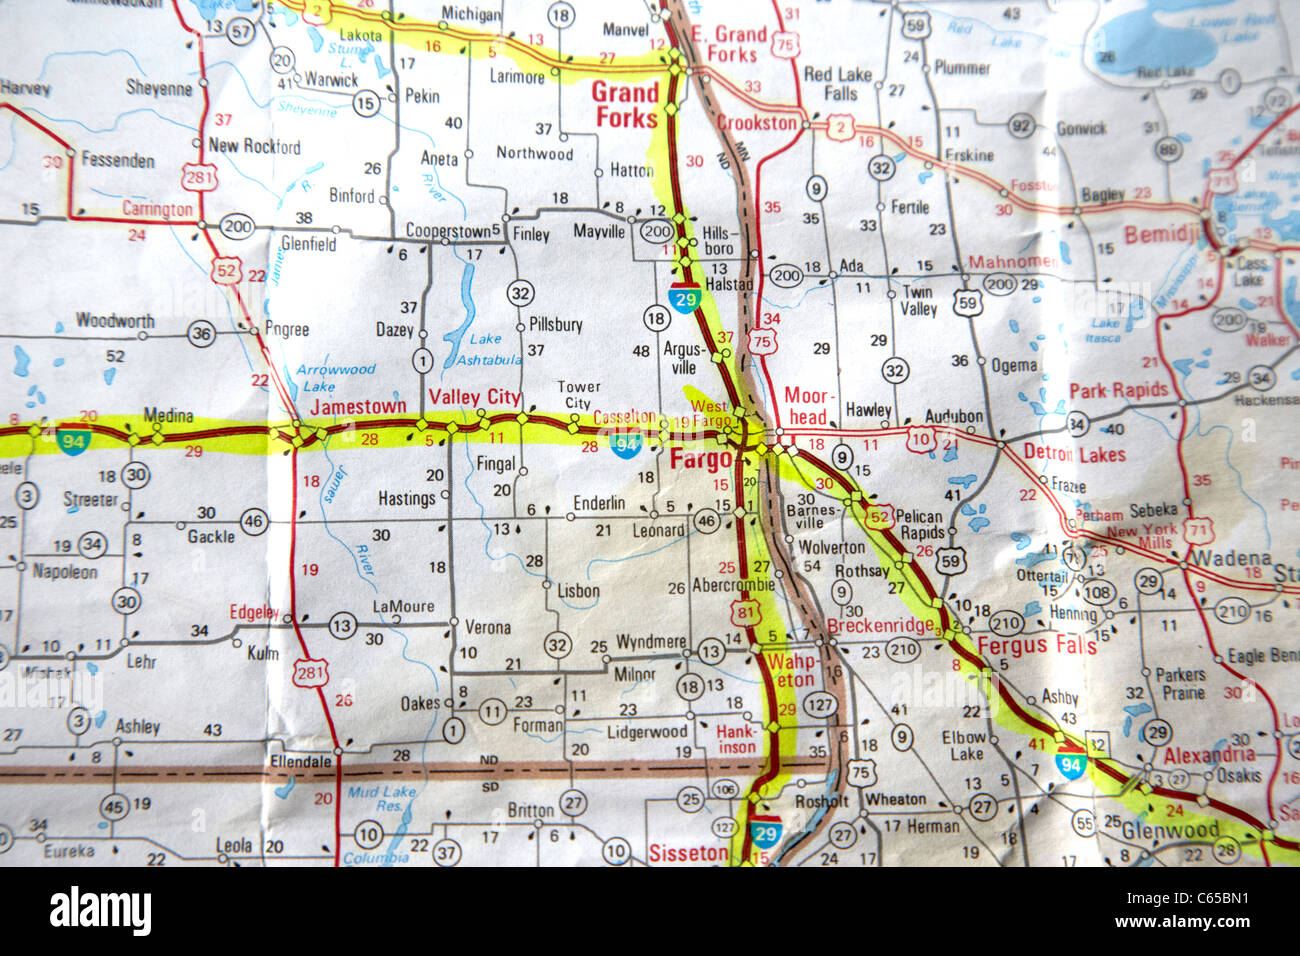 Road Map Stock Photos & Road Map Stock Images - Alamy If Road Map Midwest Usa on road map europe, road map oklahoma, road map idaho, road map manitoba, road map international, road map south america, road map mississippi, road map canada, road map spain, road map north america, road map of united states, road map connecticut, road map california, road map central america, road map washington, road map chicago, road map louisiana, road map australia, road map hawaii, road map west coast,